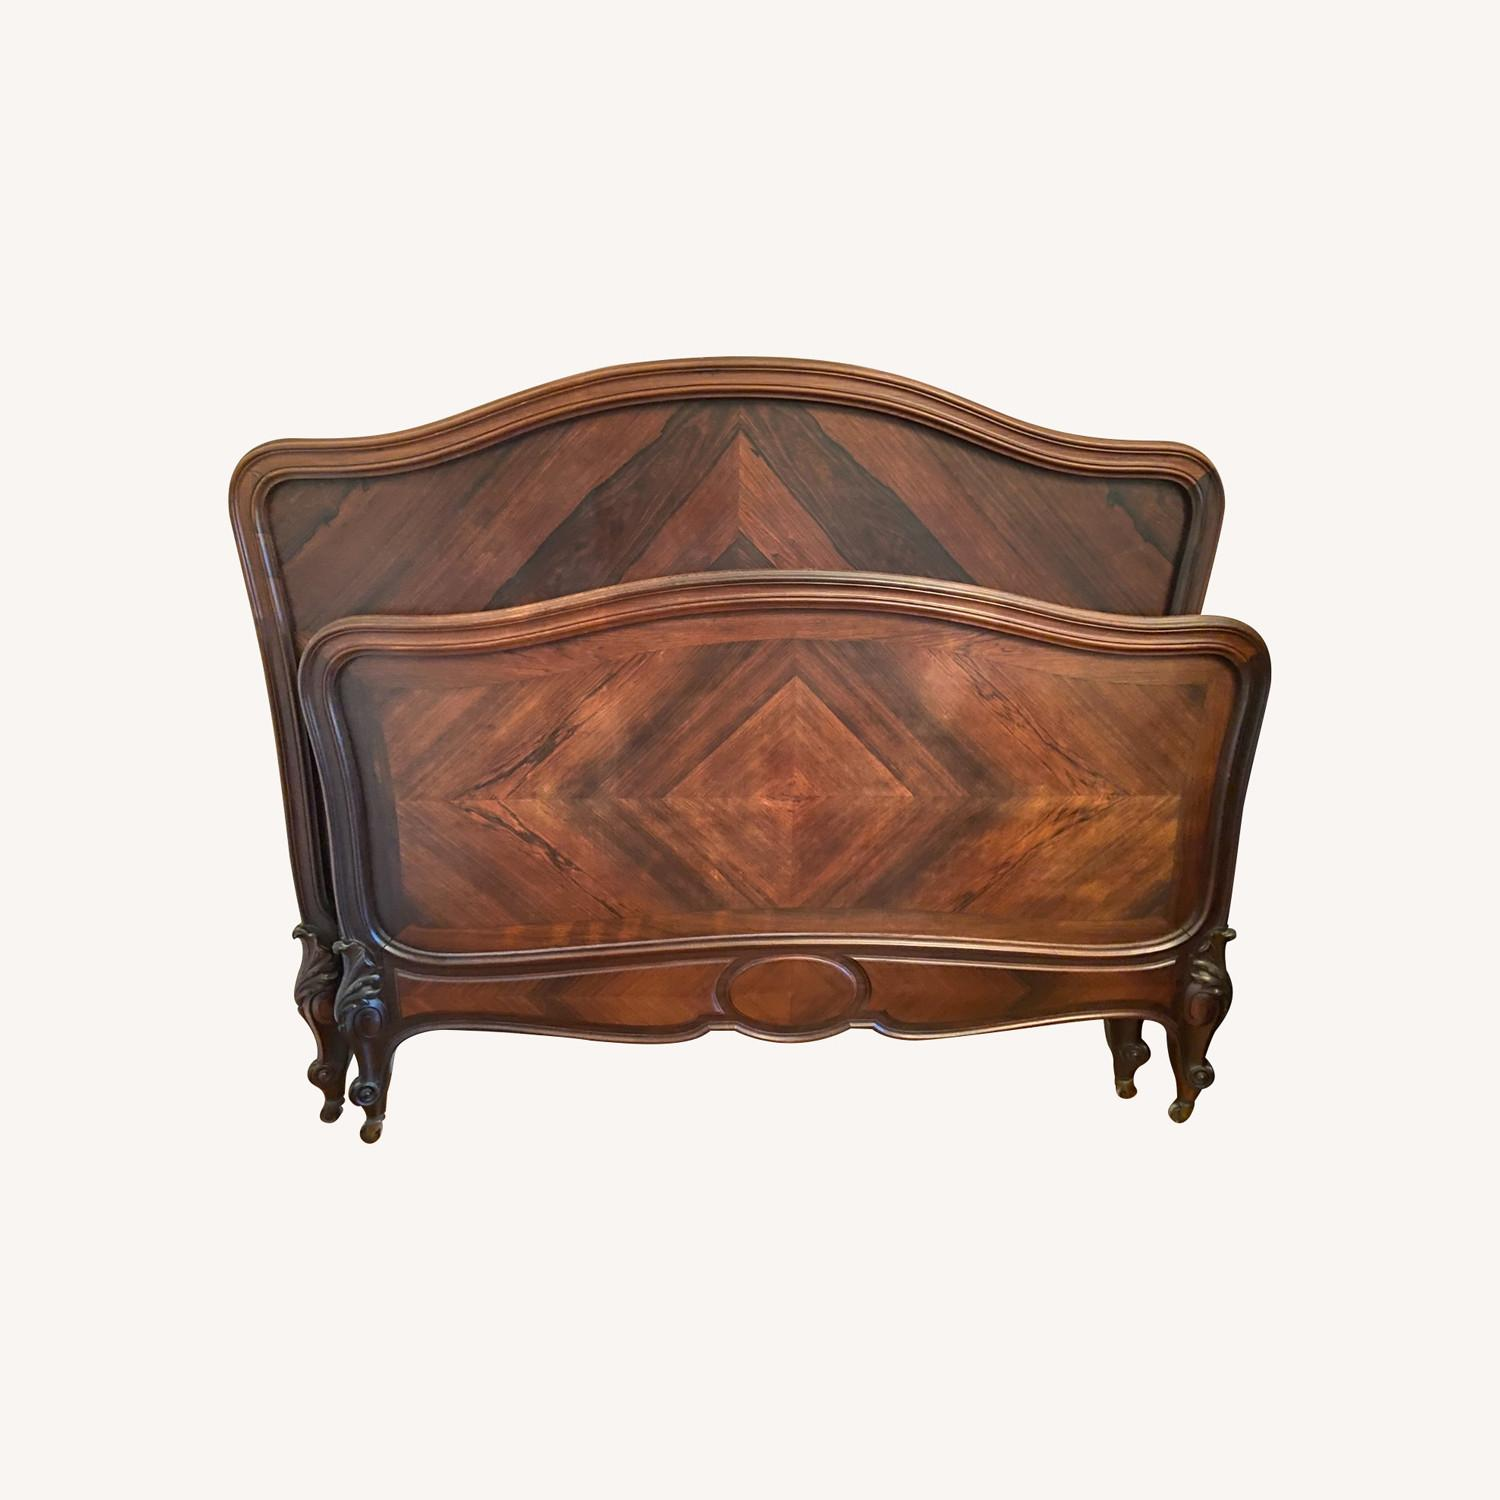 1880's Antique French Rosewood Bed - image-0